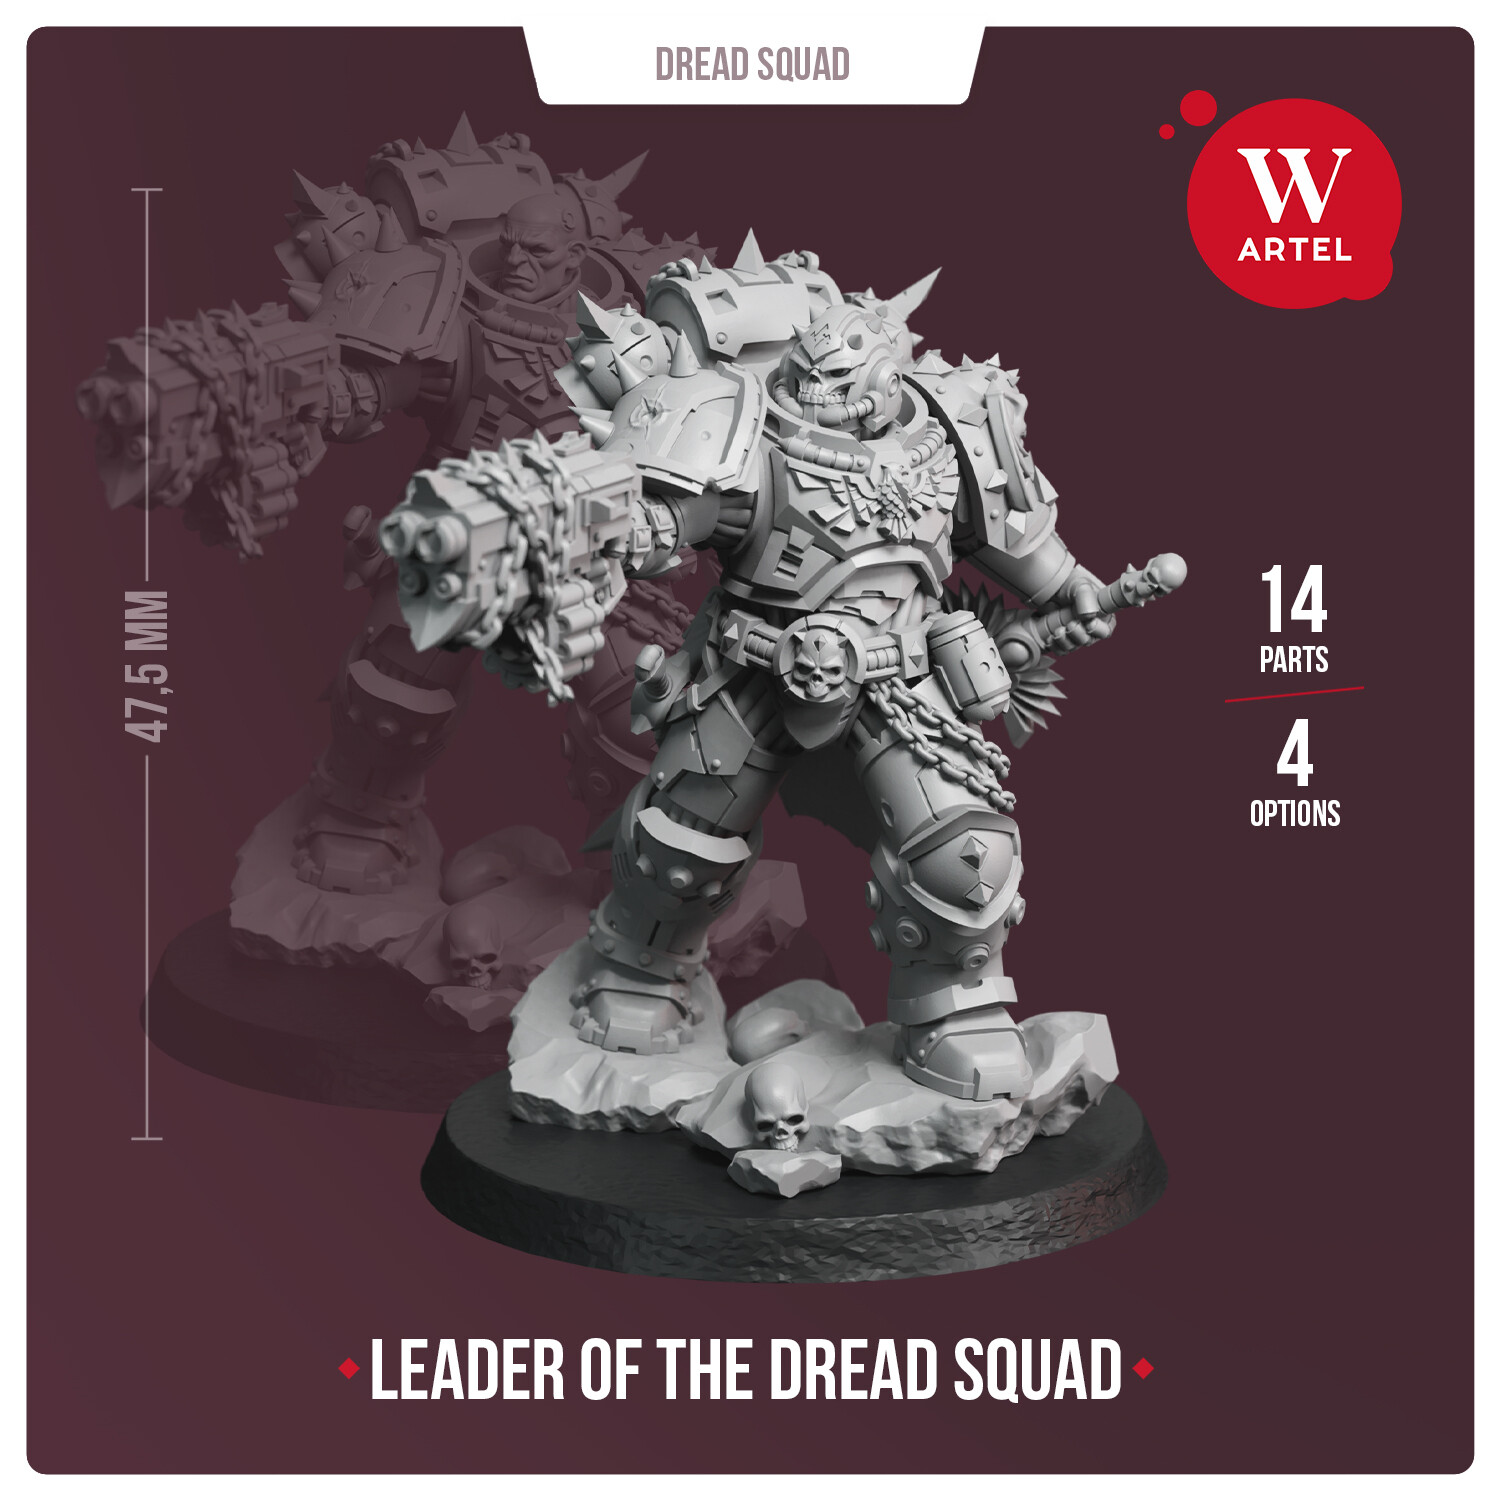 Leader of the Dread Squad